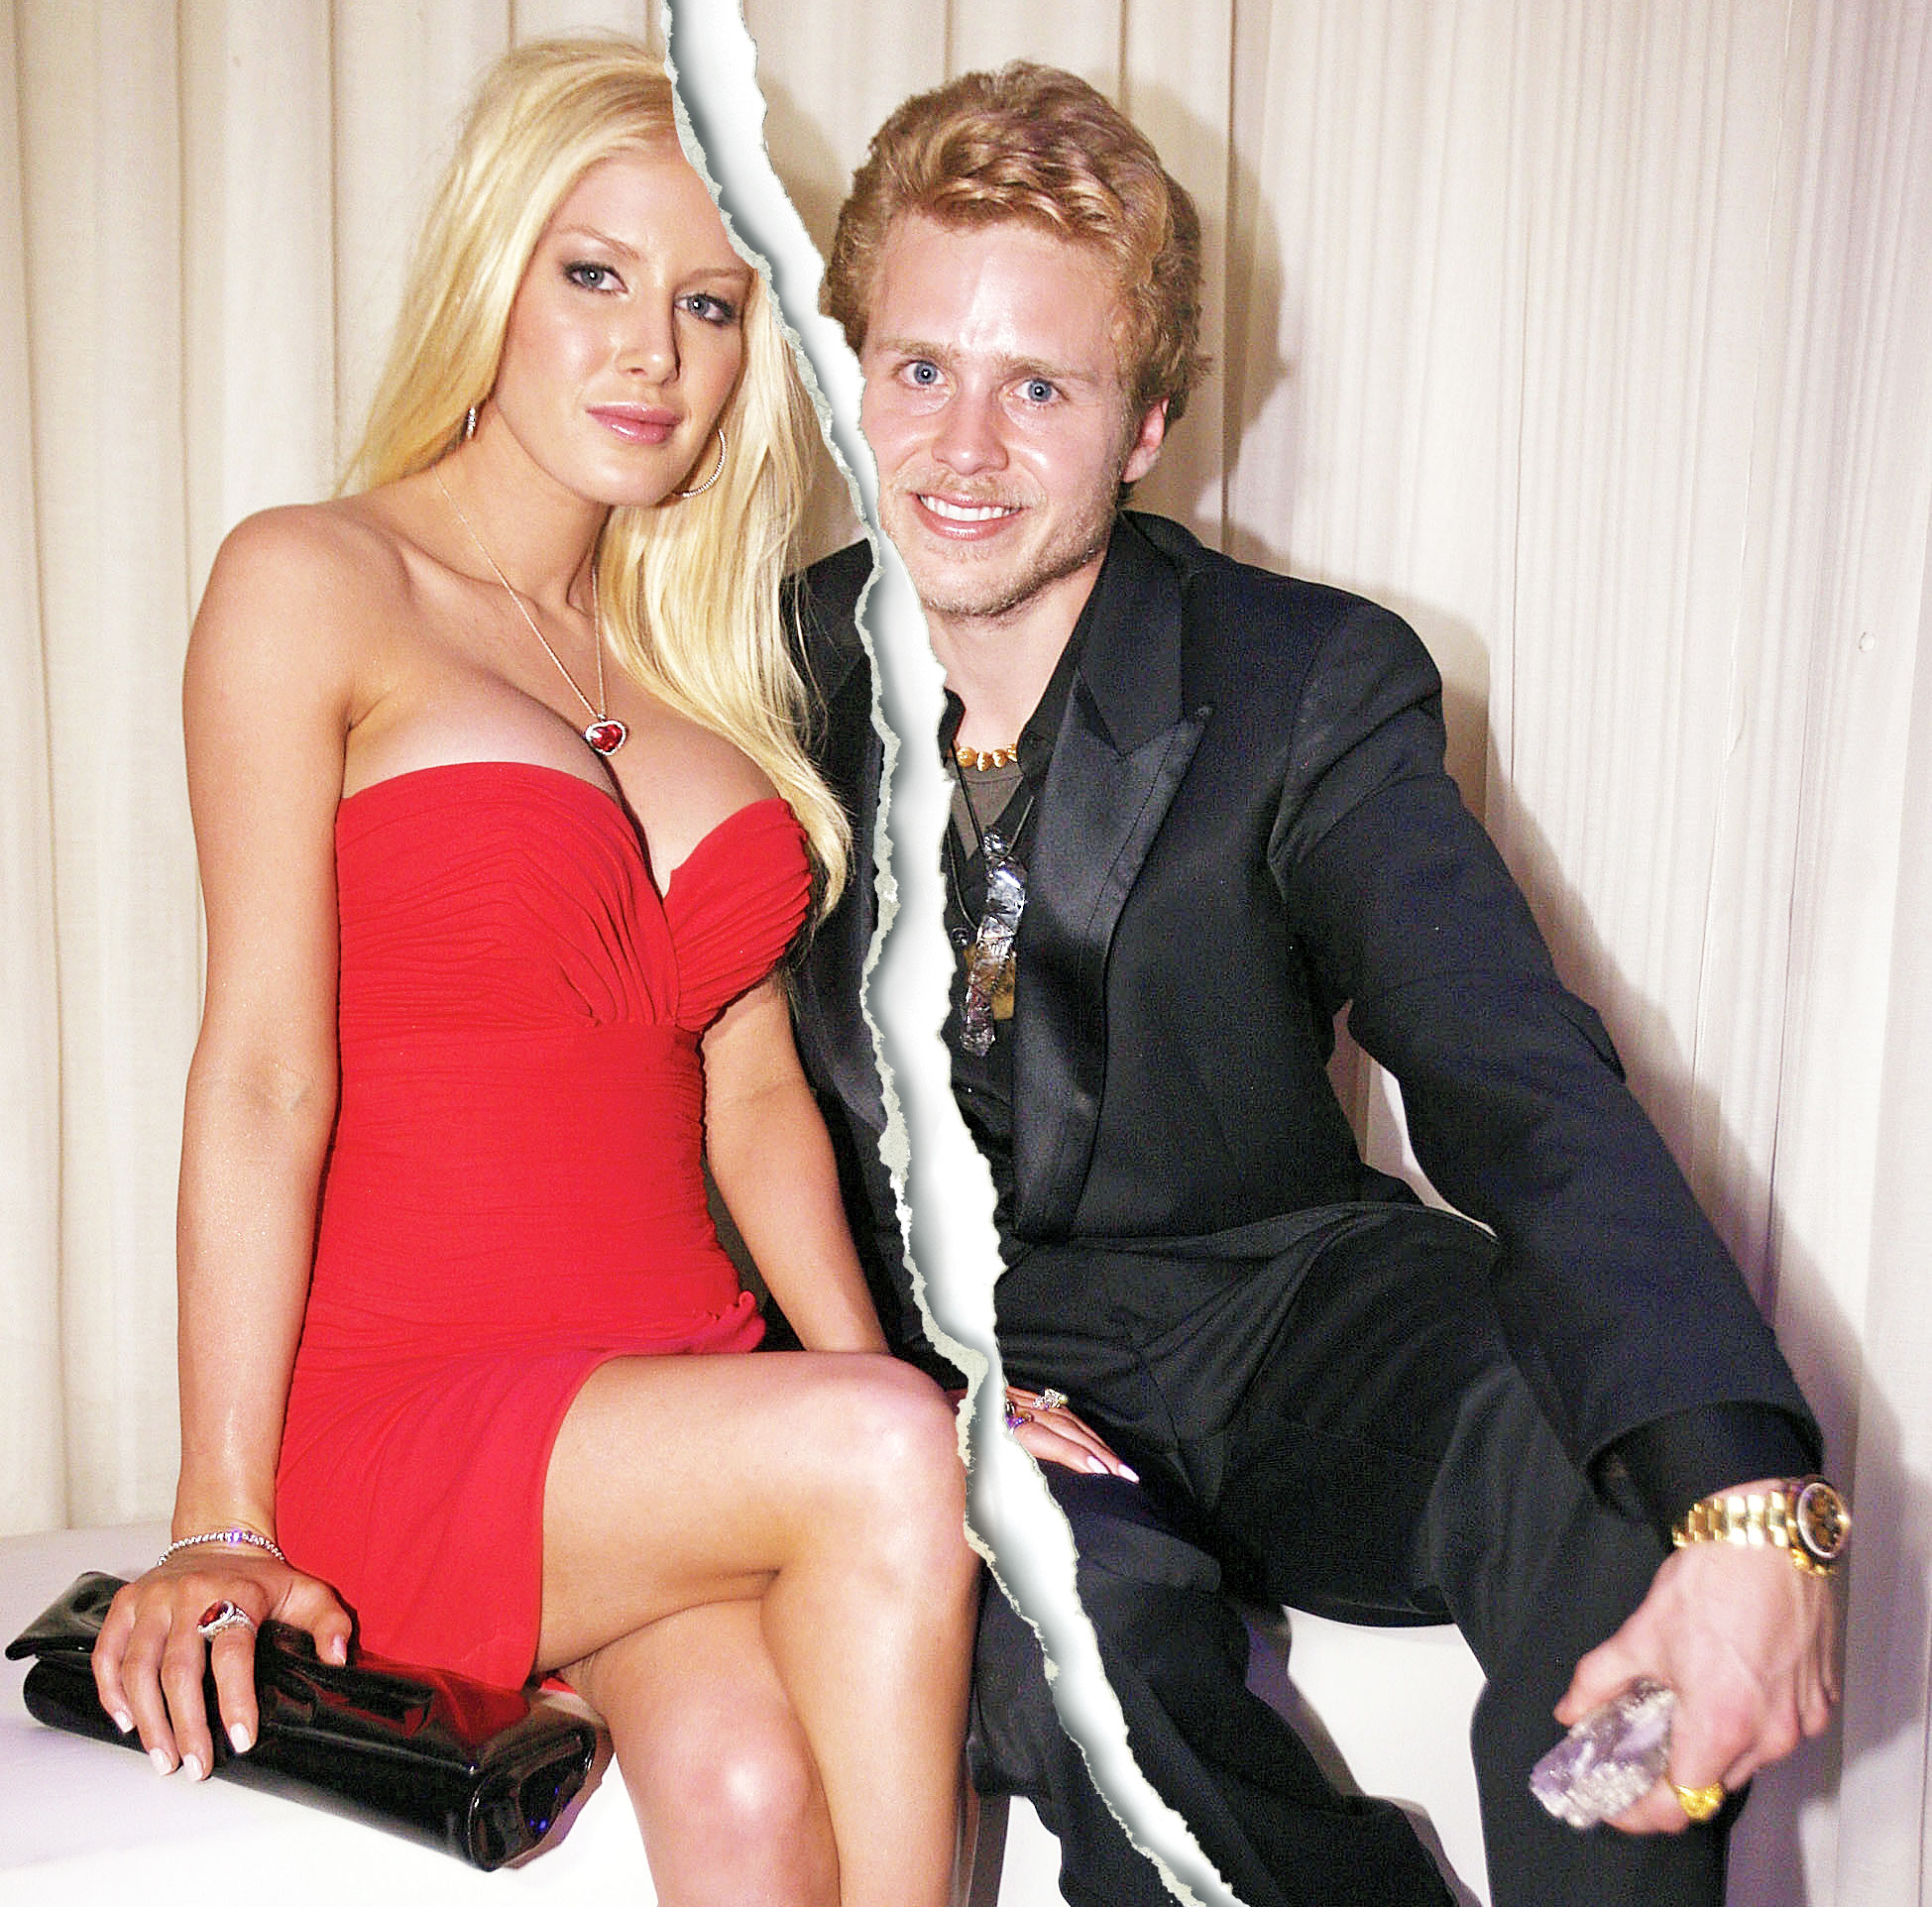 "Speidi Turns 10 Heidi Montag Spencer Pratt Split - Just days after The Hills series finale aired (and a little over a year after they wed), Heidi filed for divorce from Spencer and cited irreconcilable differences in July 2010. ""She couldn't handle King Spencer's fame, so she got out of the marriage,"" he told Us at the time."